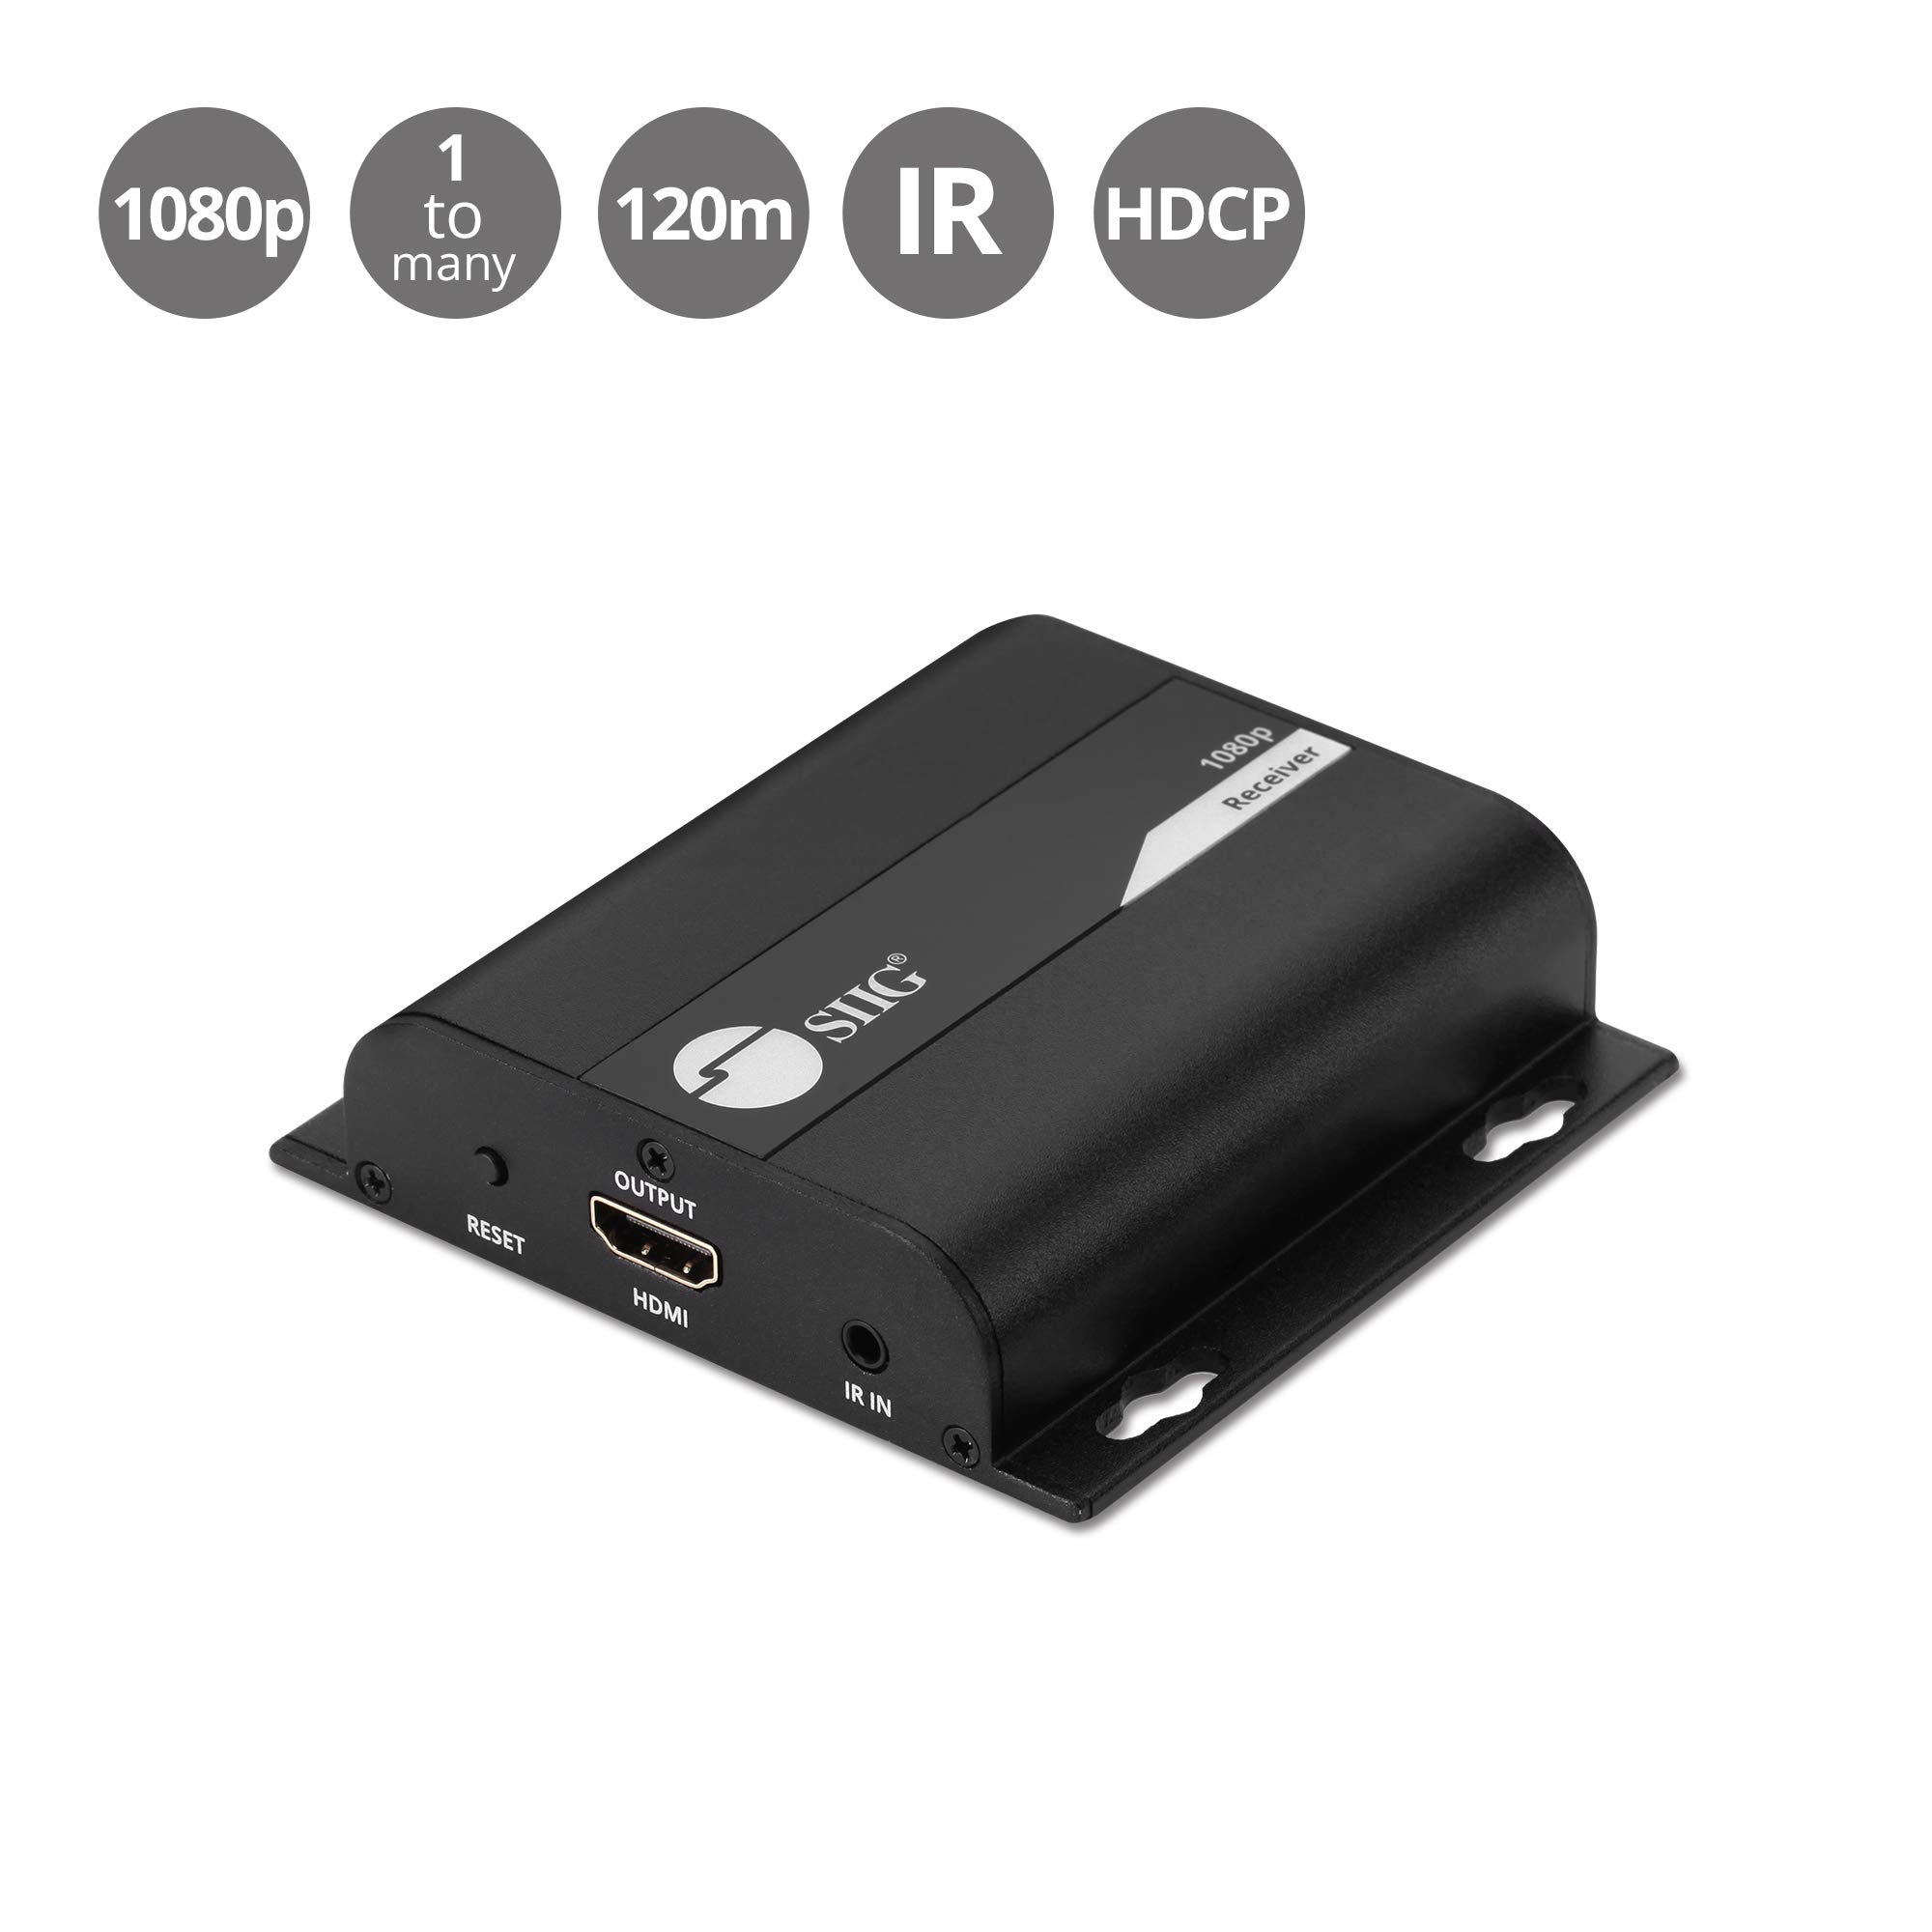 130ft SIIG 1080p @60Hz 1x8 8-Port HDMI Splitter Extender Over Cat6//6A//7 Cable w//HDMI Loopout HDCP 1.2 IR Remote Control- HDMI 1.3 CE-H24811-S1 1 in 8 Out 40M